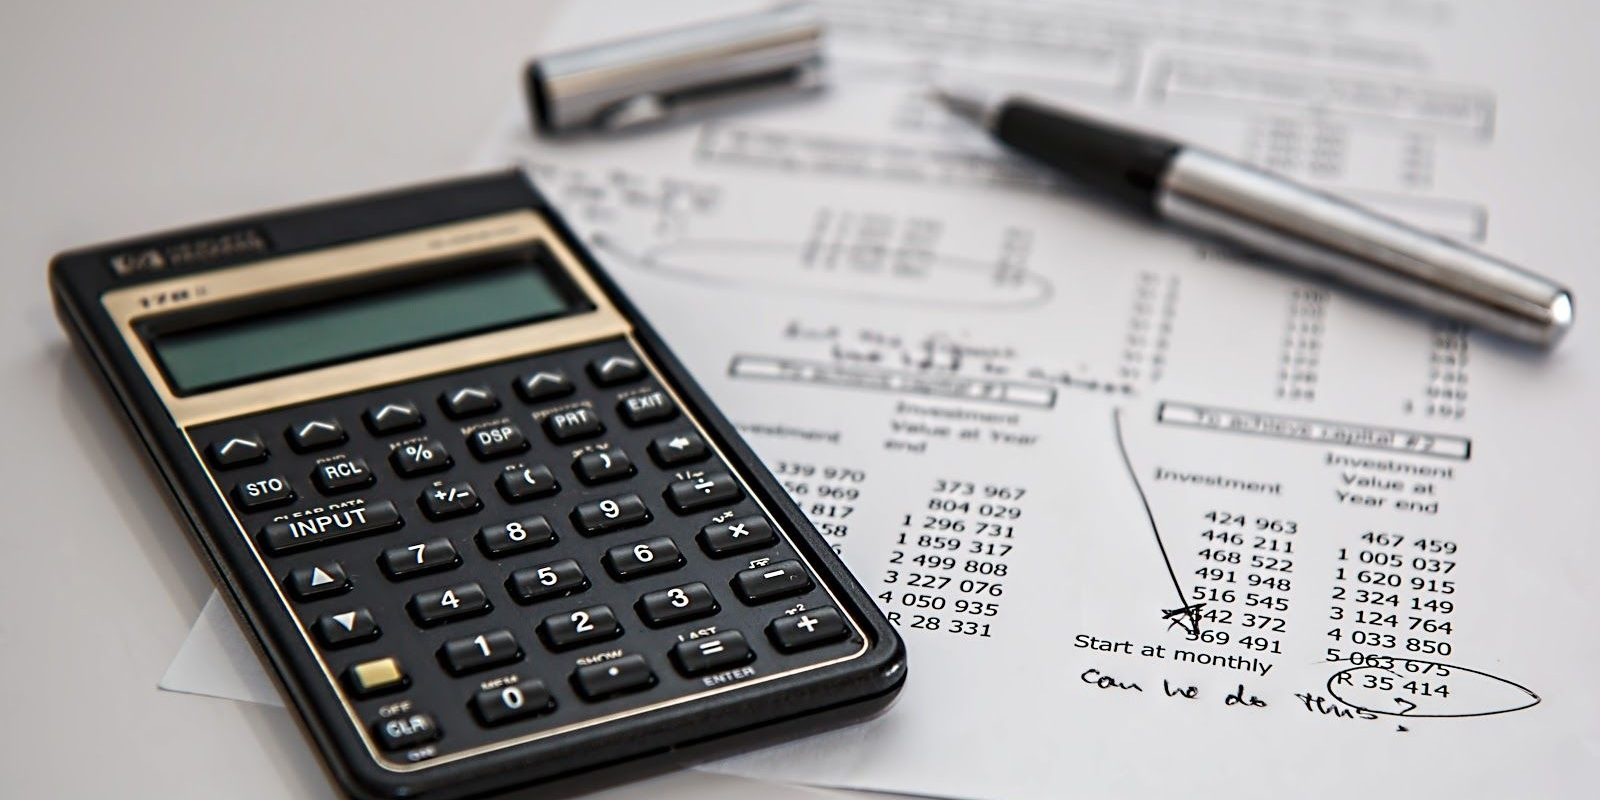 Image of a calculator and a pen sitting on top of an accountants desk with Quickbooks notes